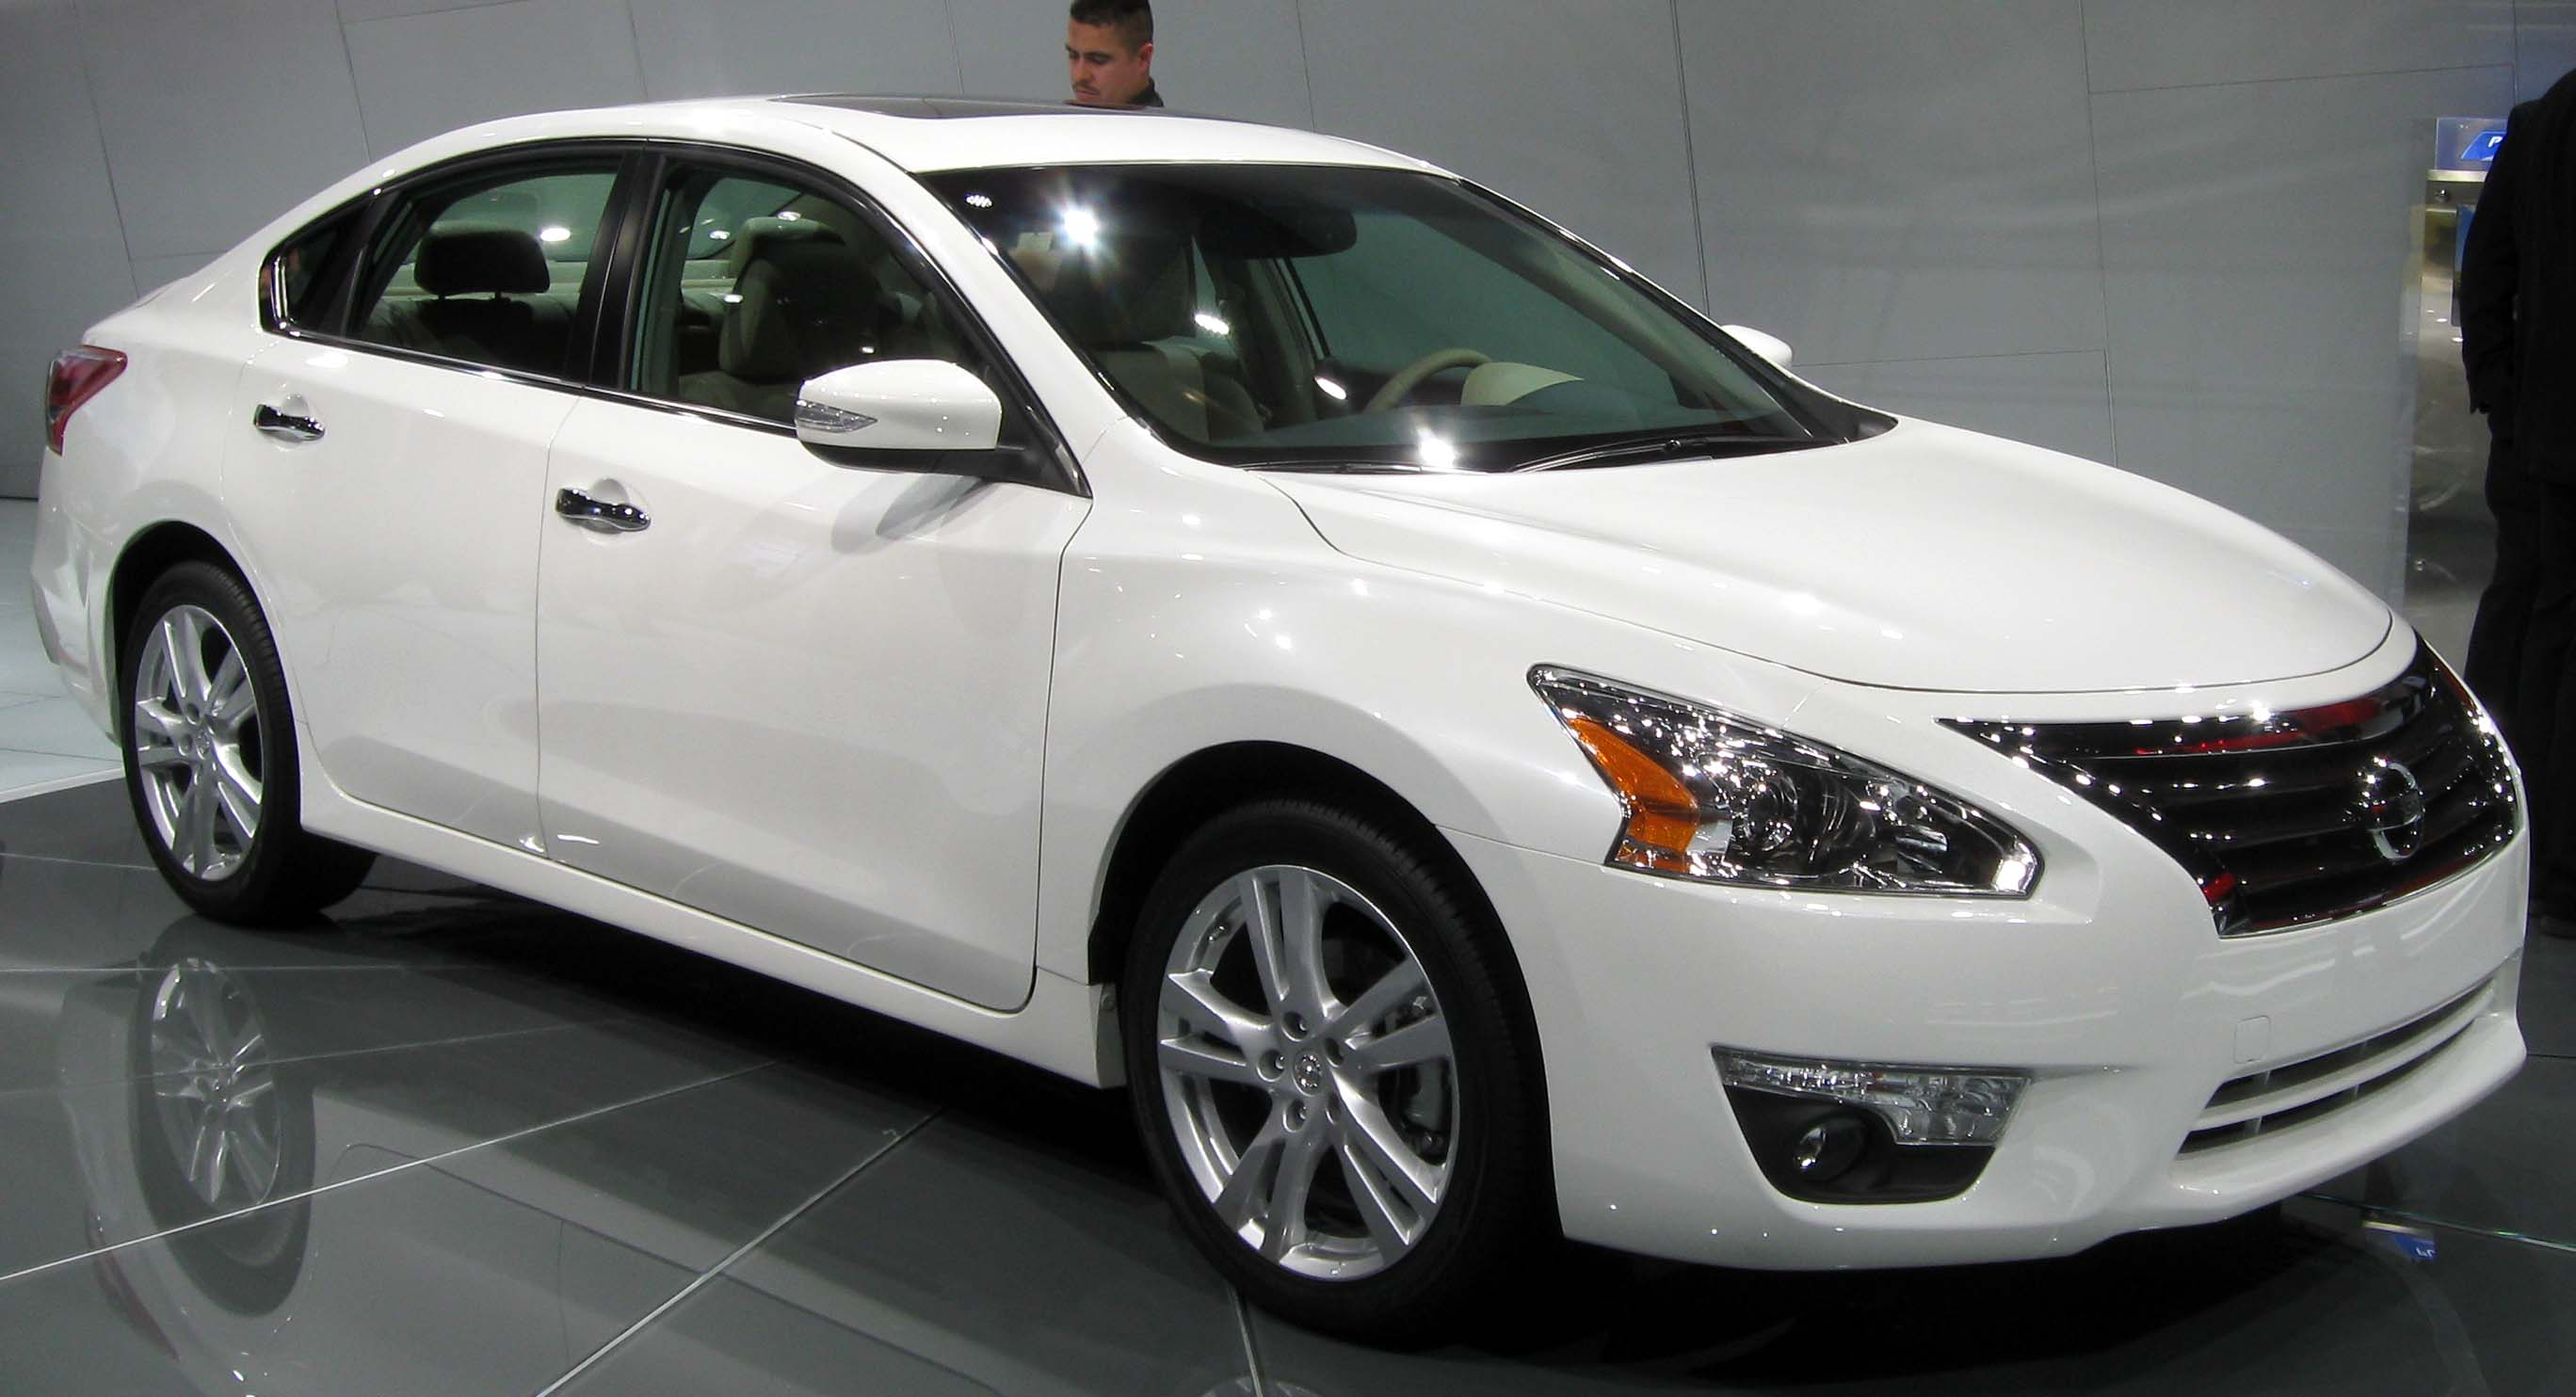 Auto Recalls: Hood Of Nissan Altima Could Pop Up While ...